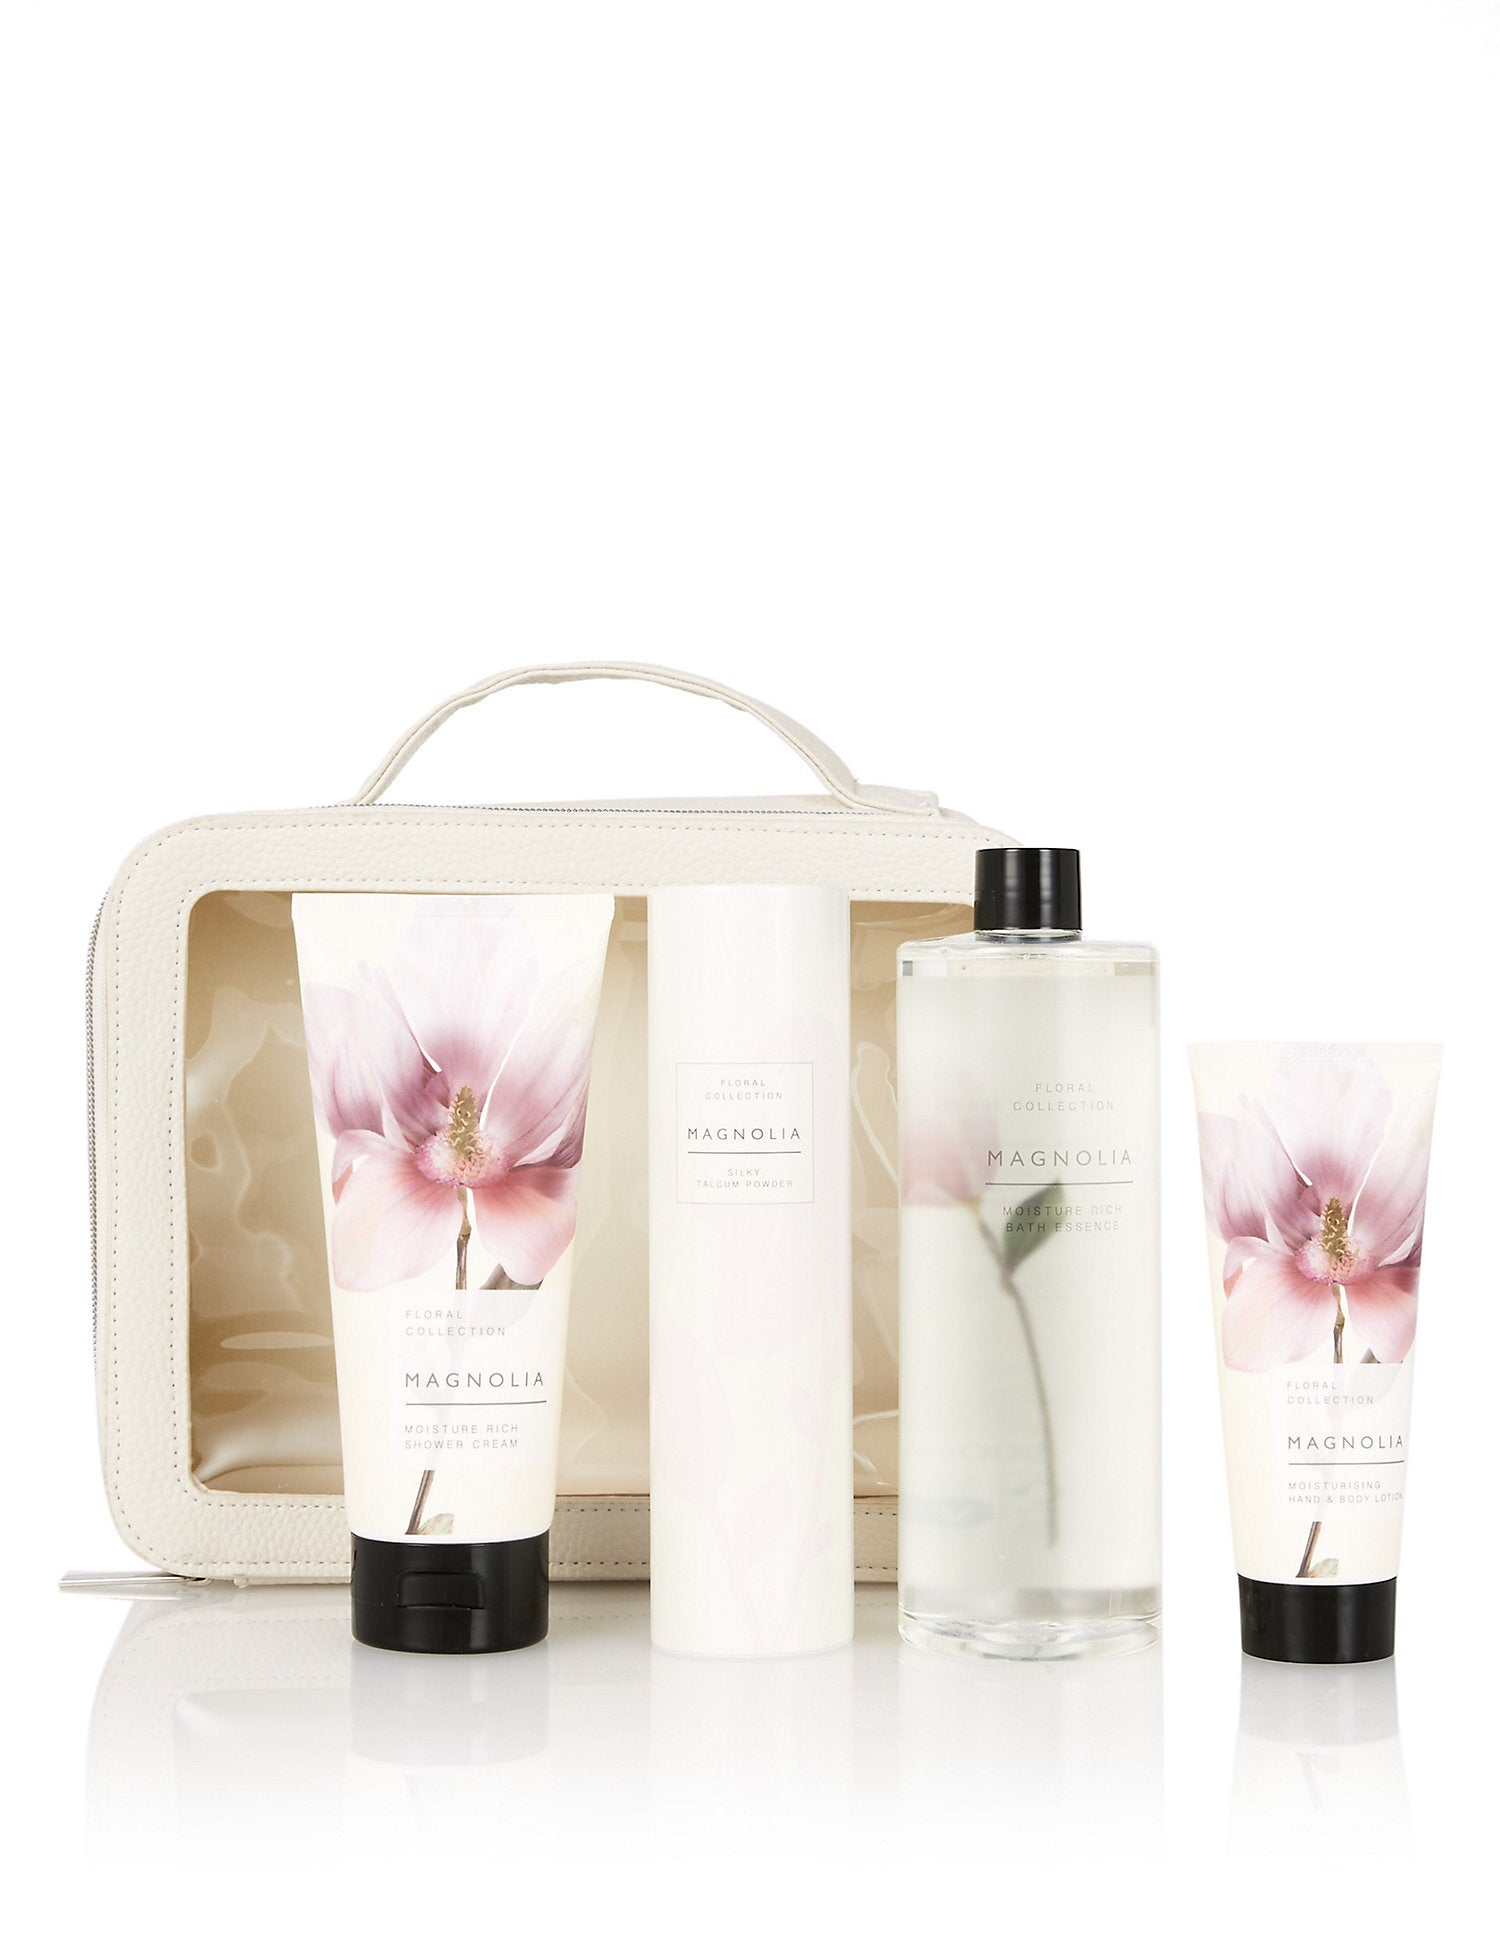 Magnolia Toiletry Bag Gift Set